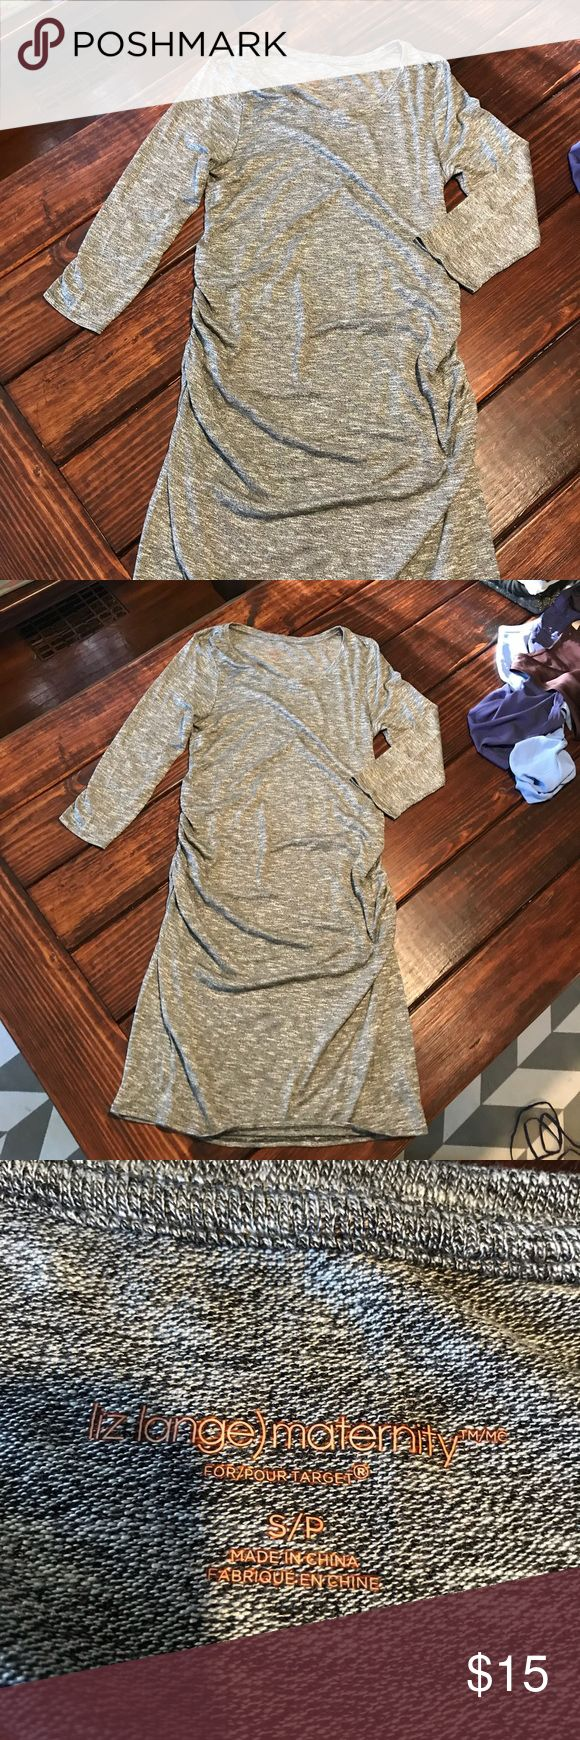 Heathered grey maternity dress Cute dress! Length from top of back to bottom is 39in. Size small Liz Lange for Target Dresses Midi